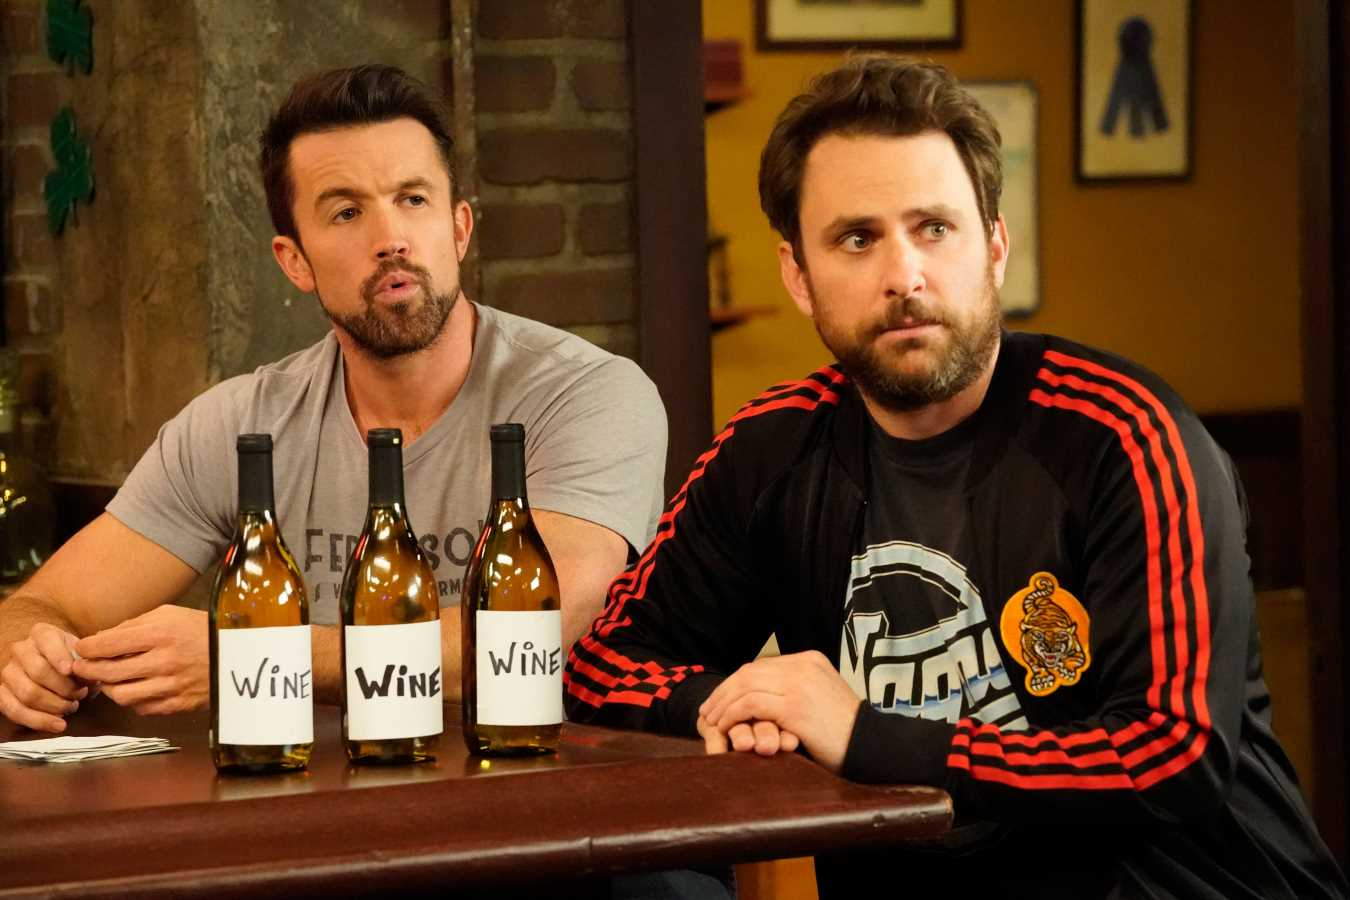 Emmys 2019: Why It's Always Sunny in Philadelphia deserves a trophy